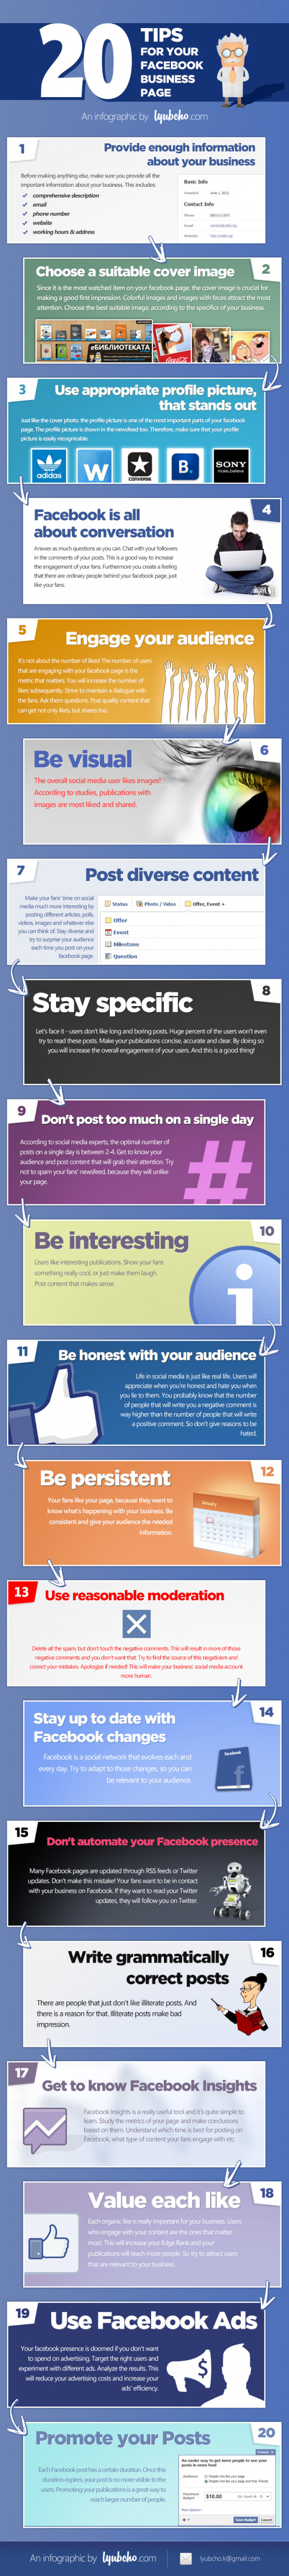 20 Tips for your Facebook Business Page